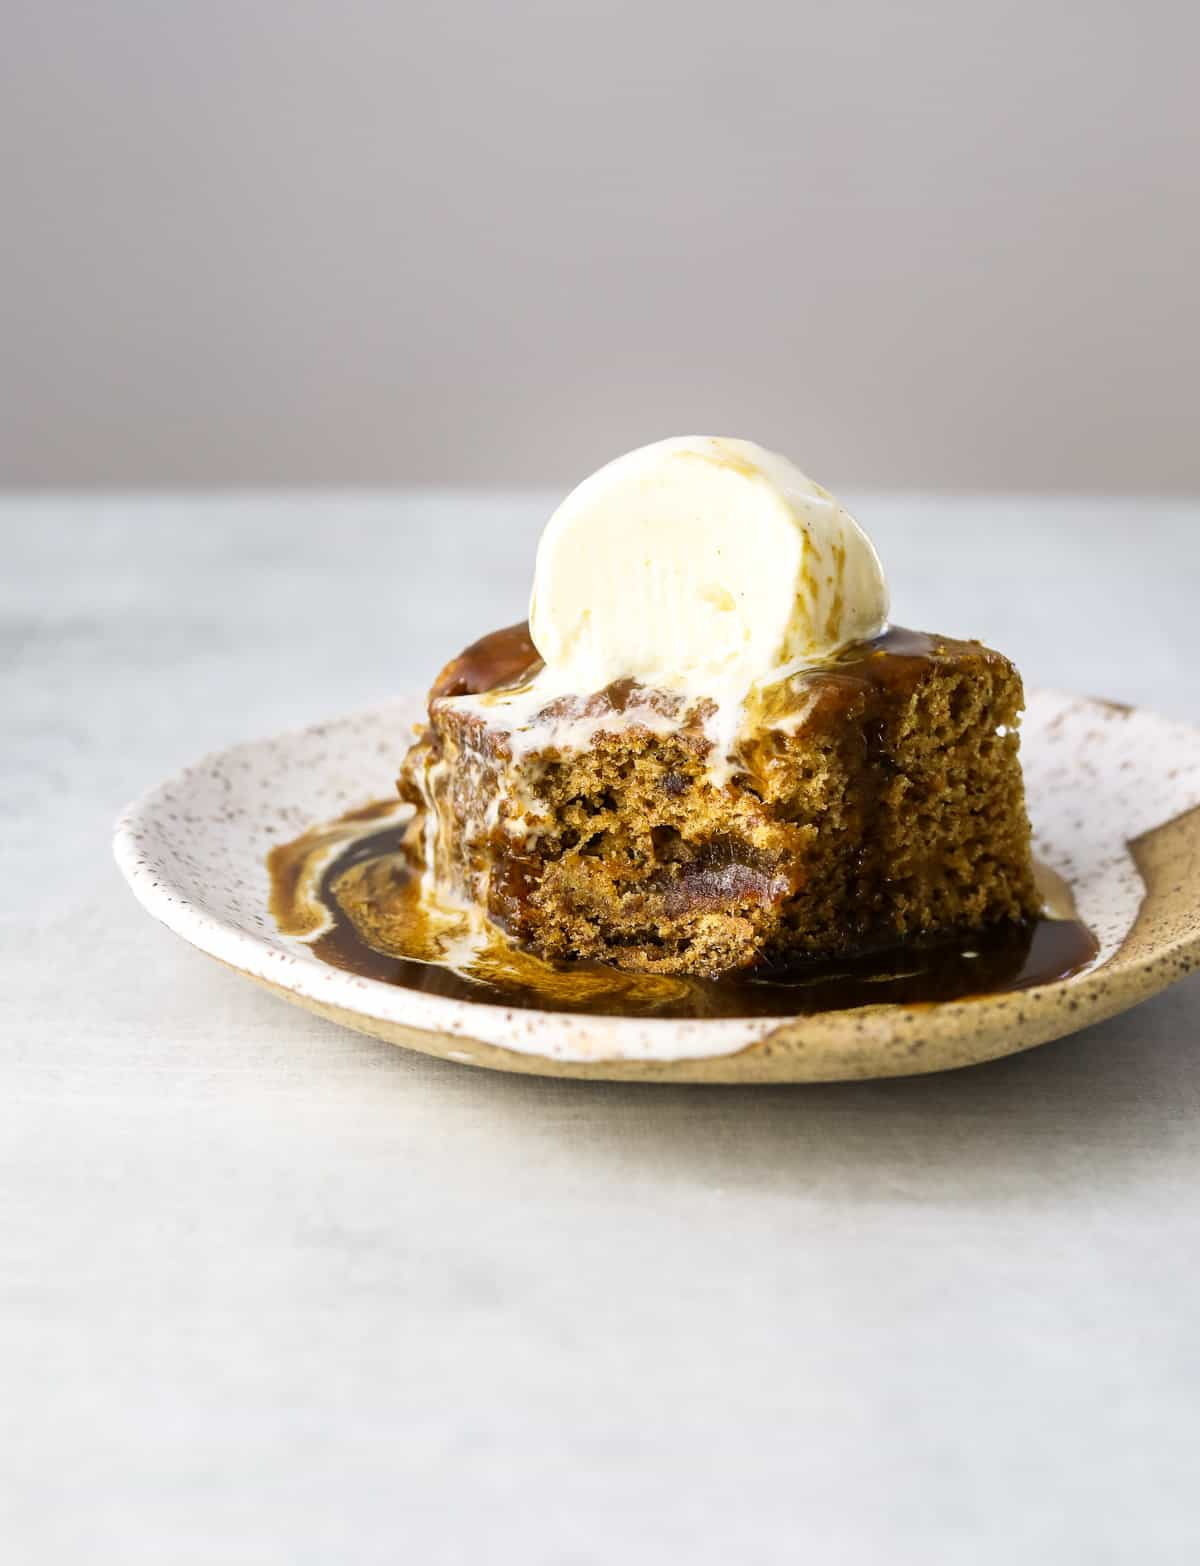 a square of date cake, topped with ice cream and caramel sauce with a bite missing